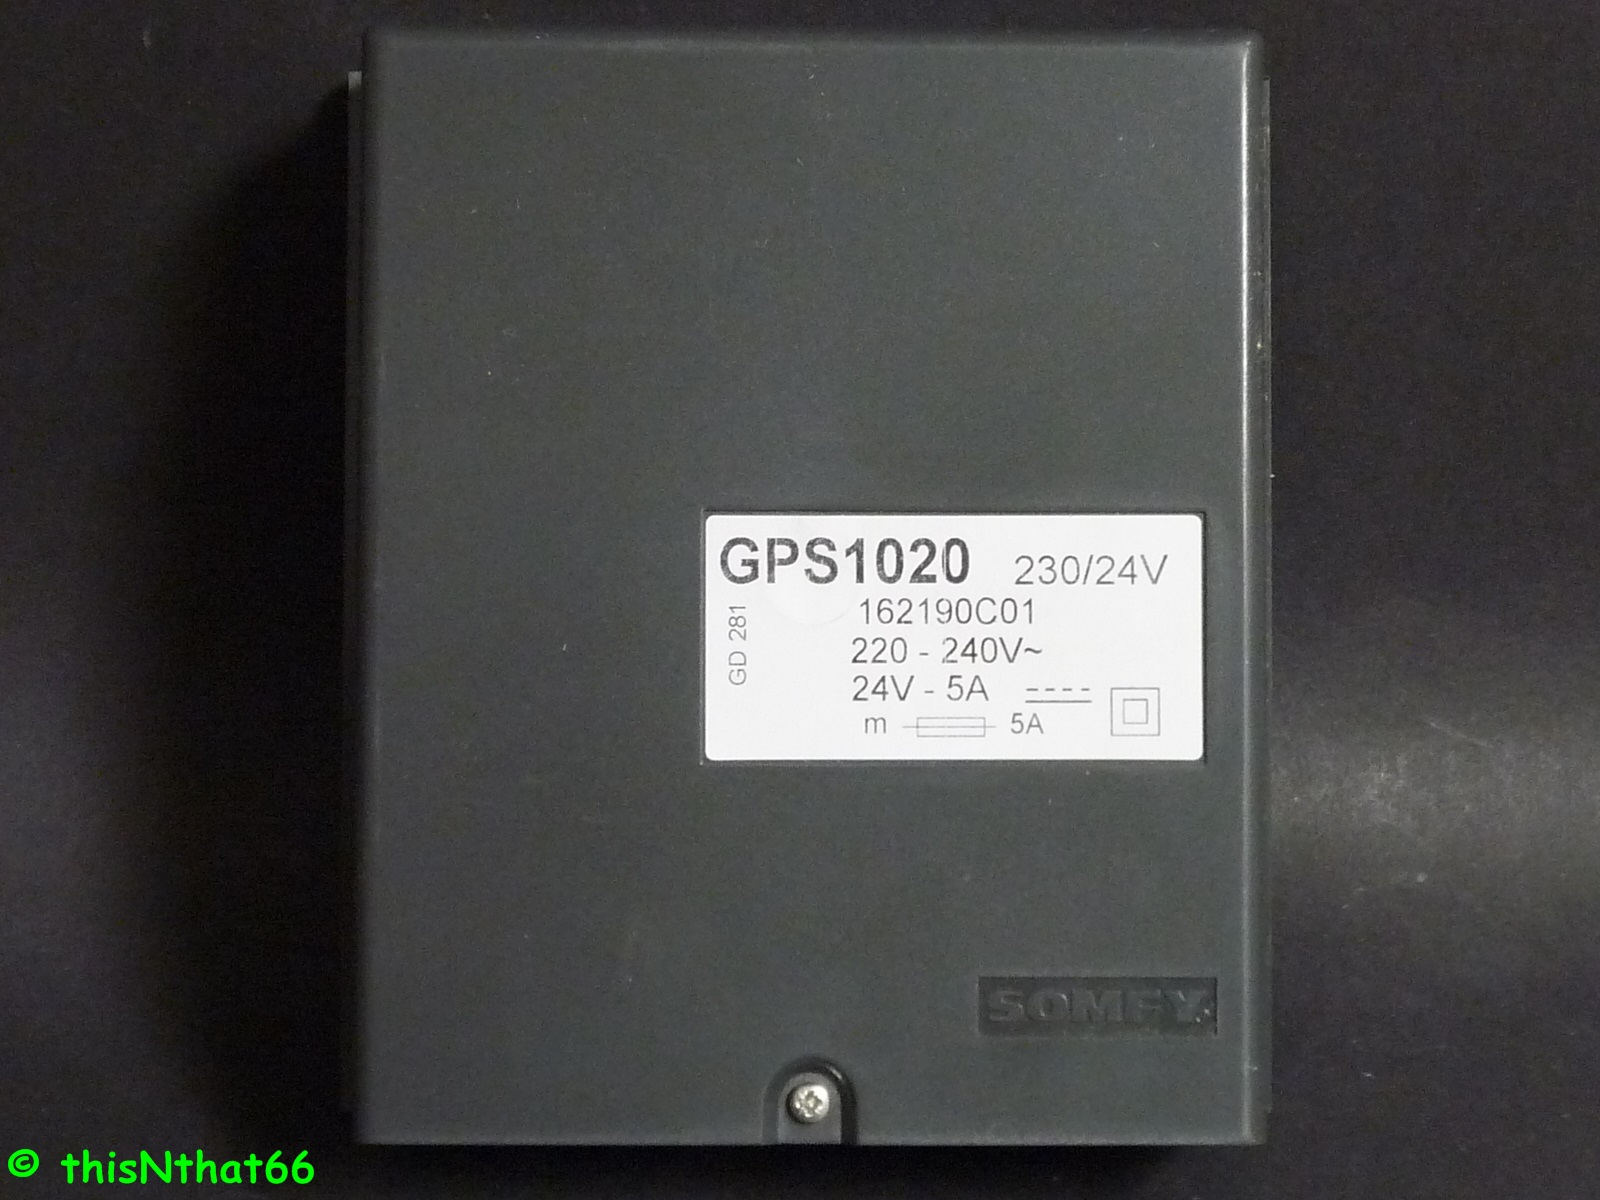 Somfy groups control for Blind drives GPS 1020 24 V DC or